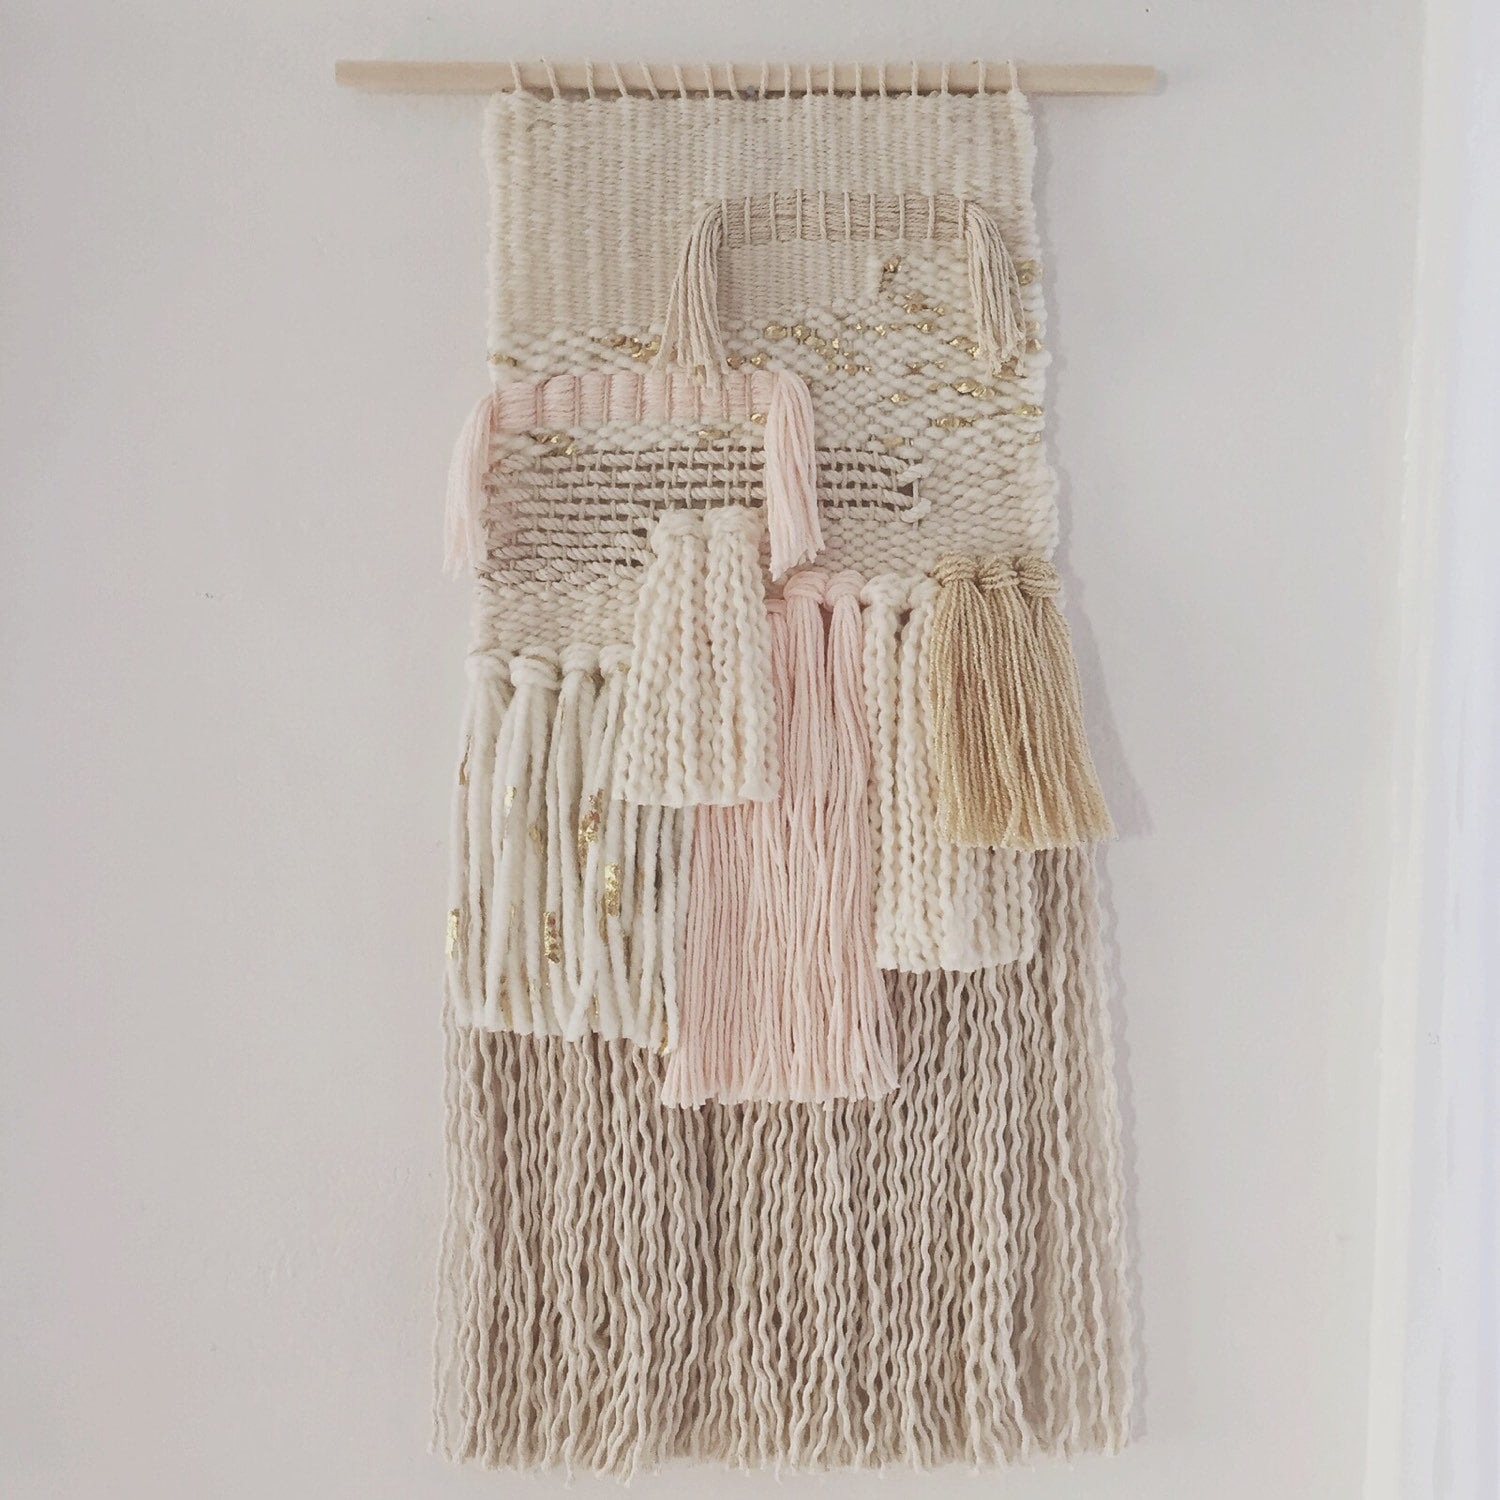 Handwoven Wall Hanging ($85) | The Prettiest Woven Wall In Latest Hand Woven Wall Hangings (View 3 of 20)